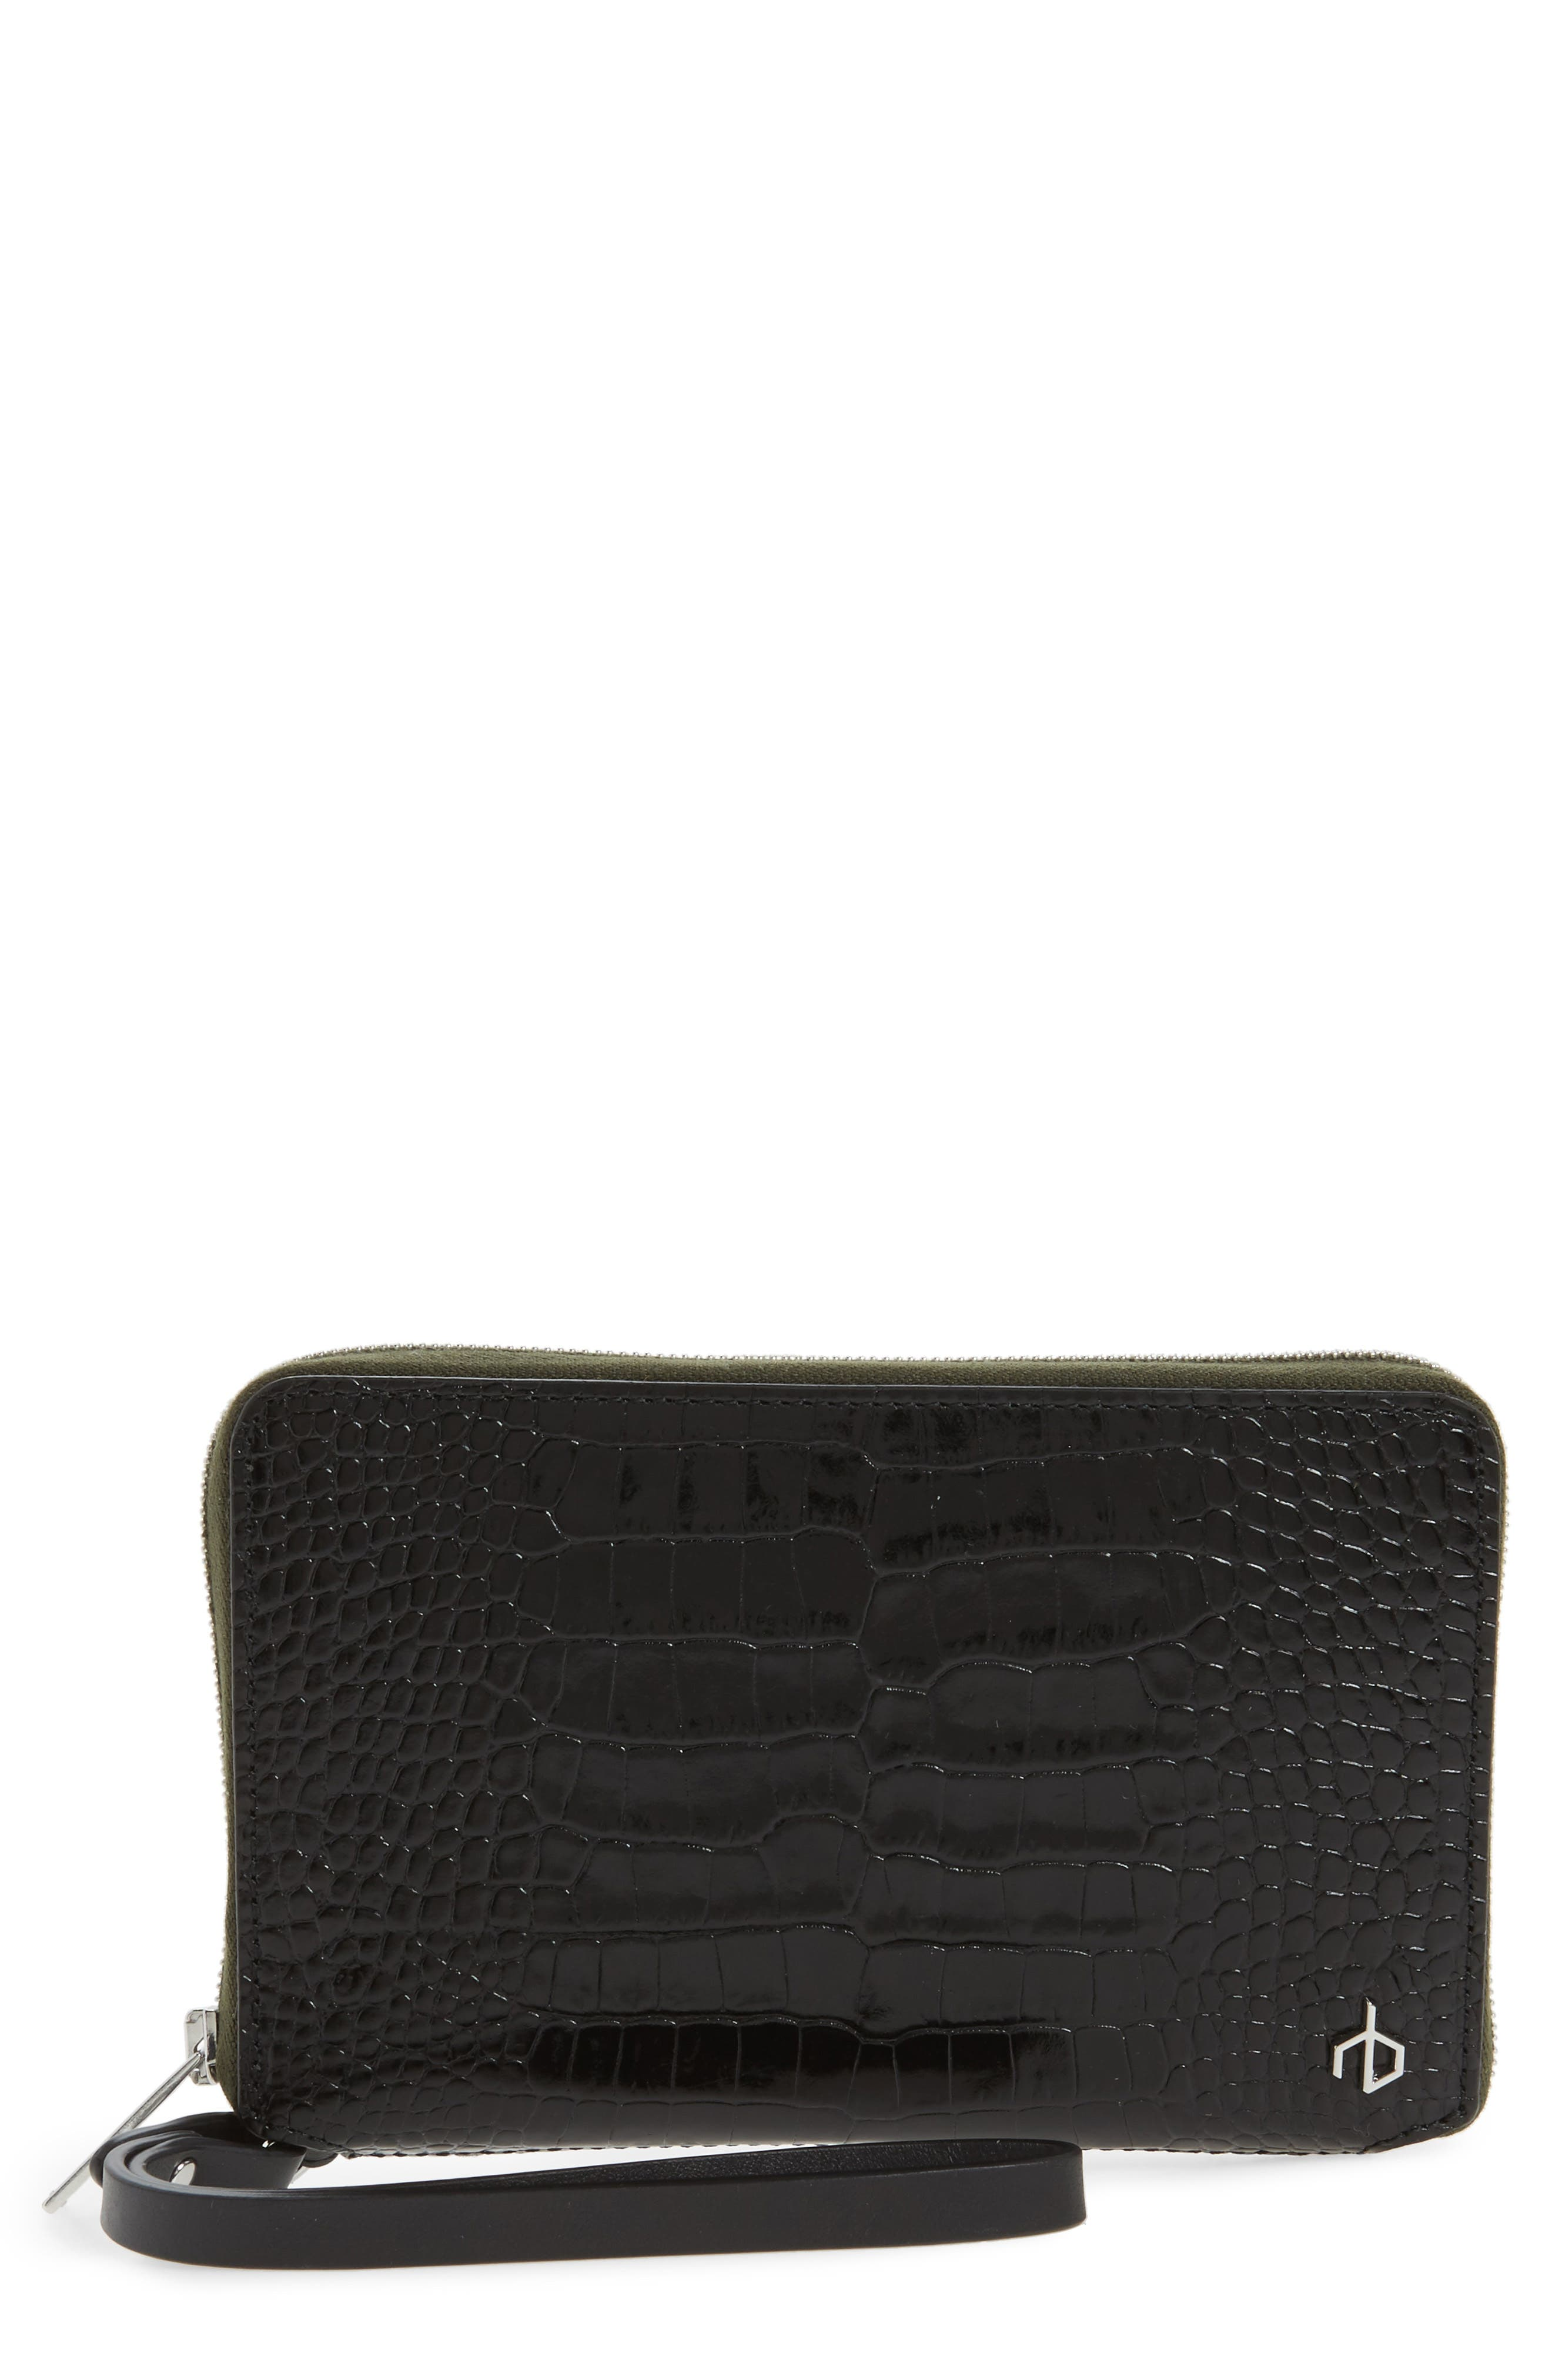 Croc Embossed Leather Smartphone Wallet,                             Main thumbnail 1, color,                             Black Croco